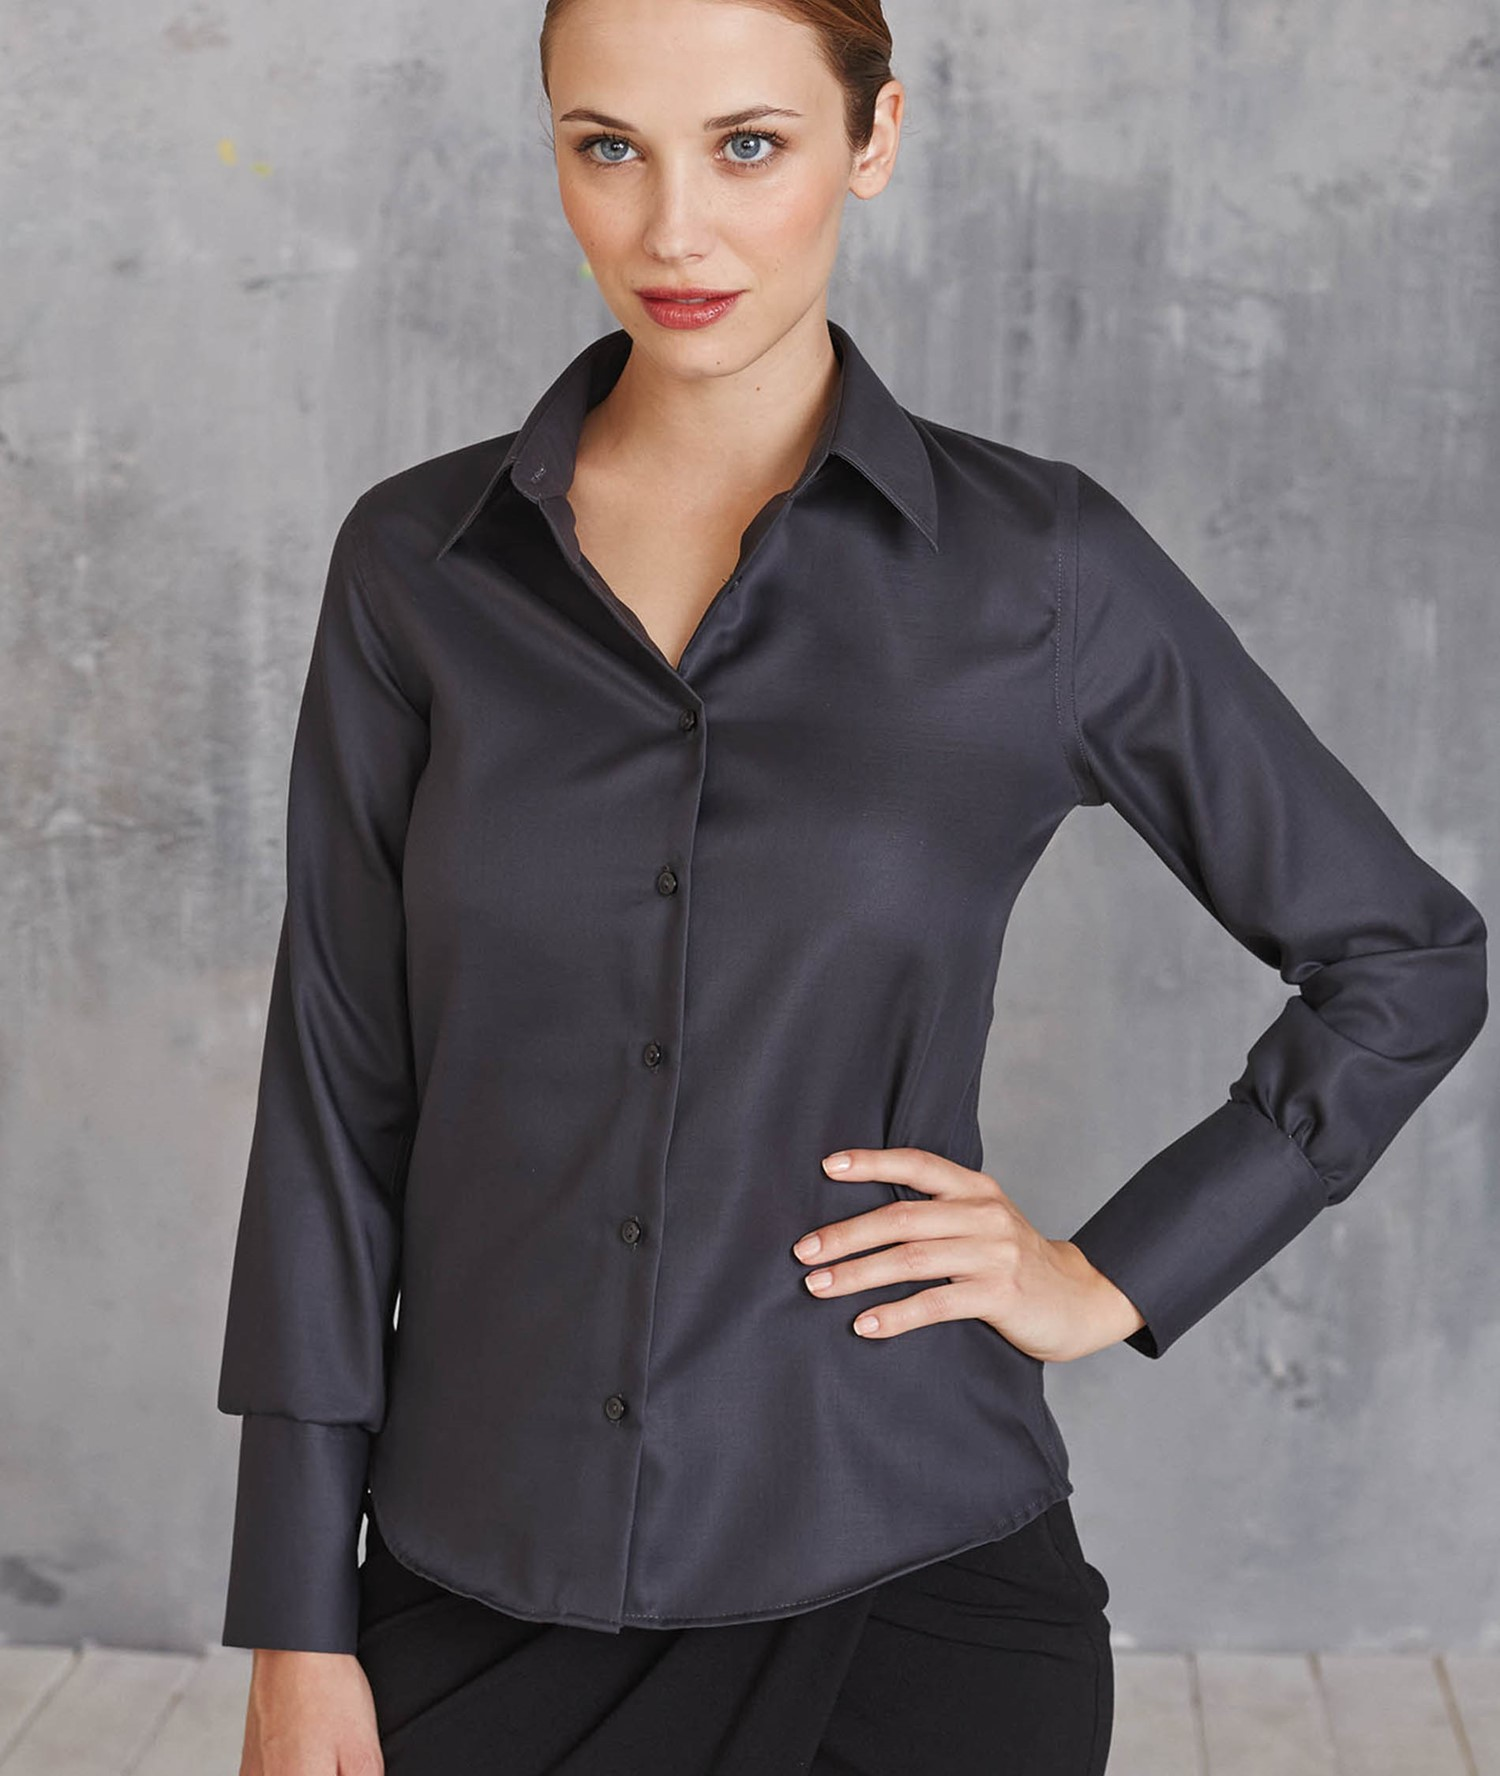 LADIES' LONG-SLEEVED NON-IRON SHIRT